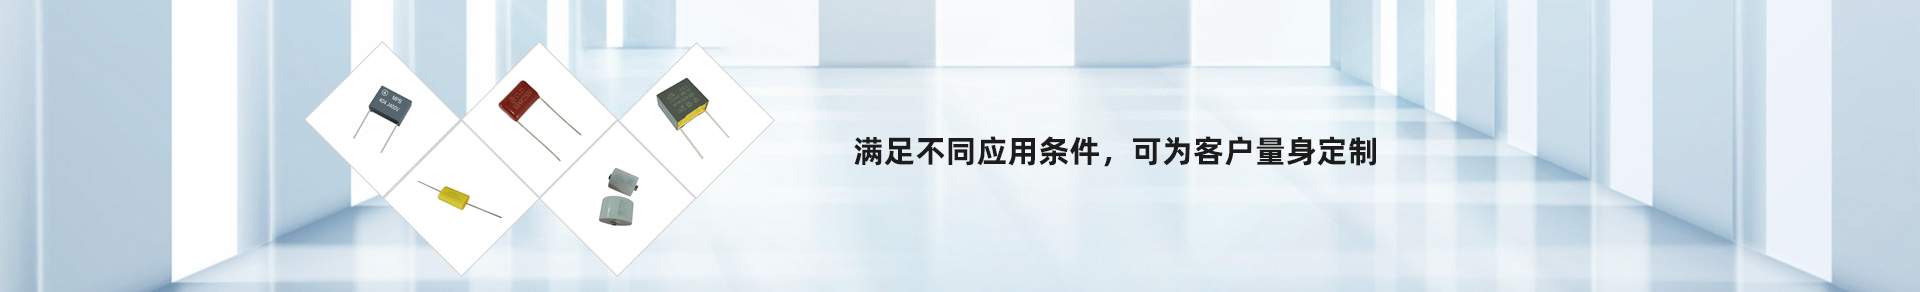 http://www.hjcap.cn/data/upload/202004/20200421112941_569.jpg